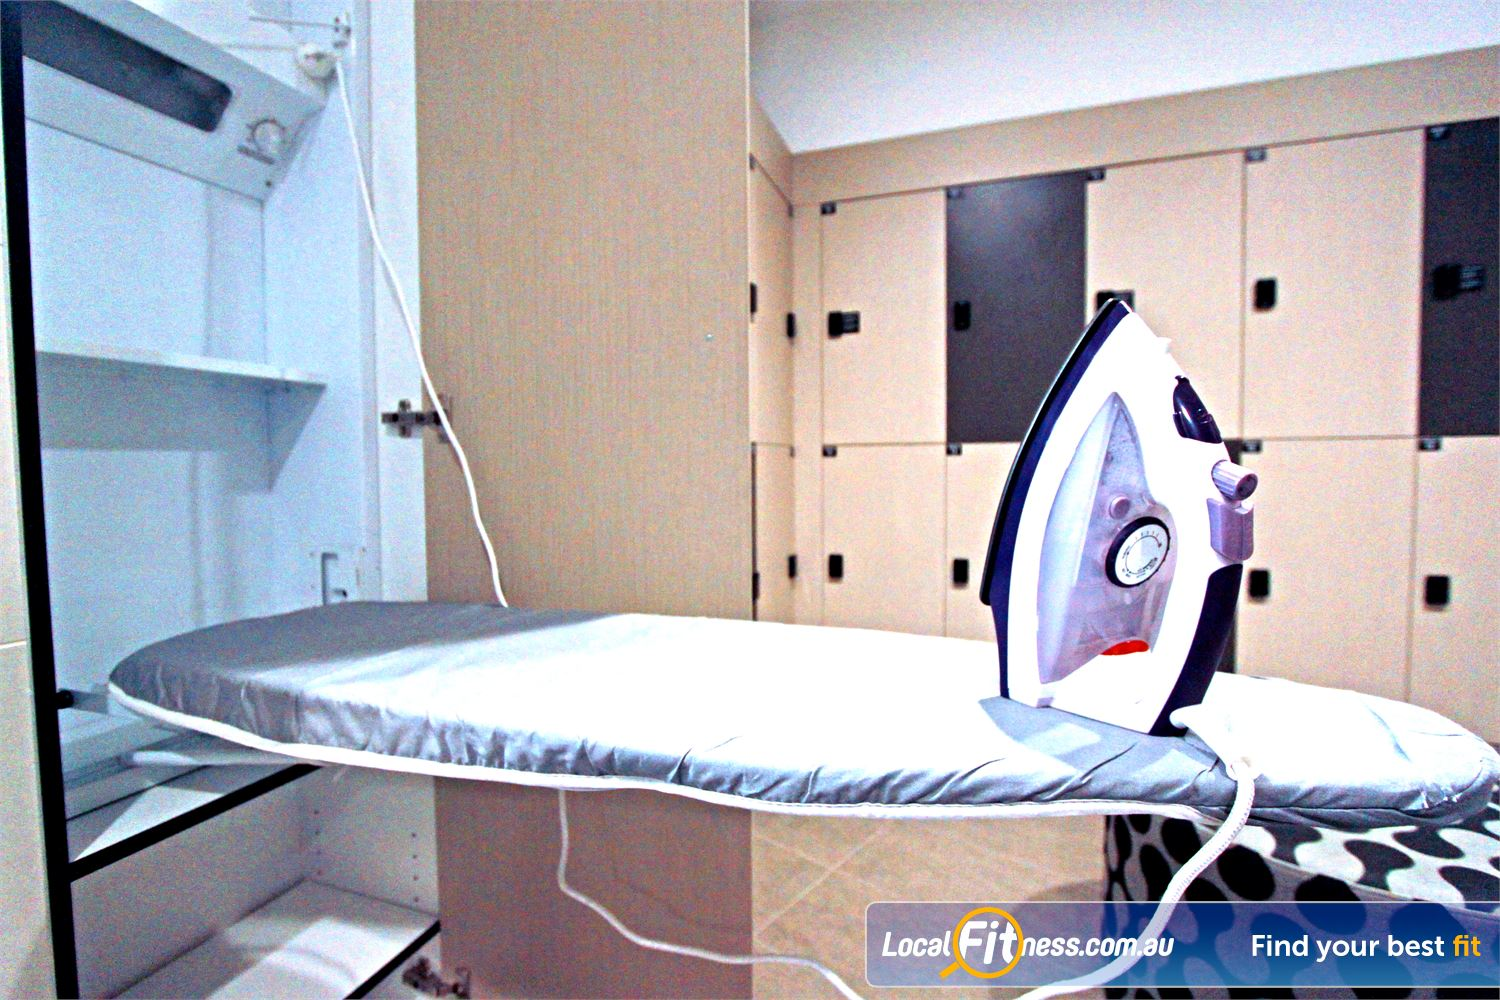 Goodlife Health Clubs Near North Melbourne We cater for all corporates with our iron station.